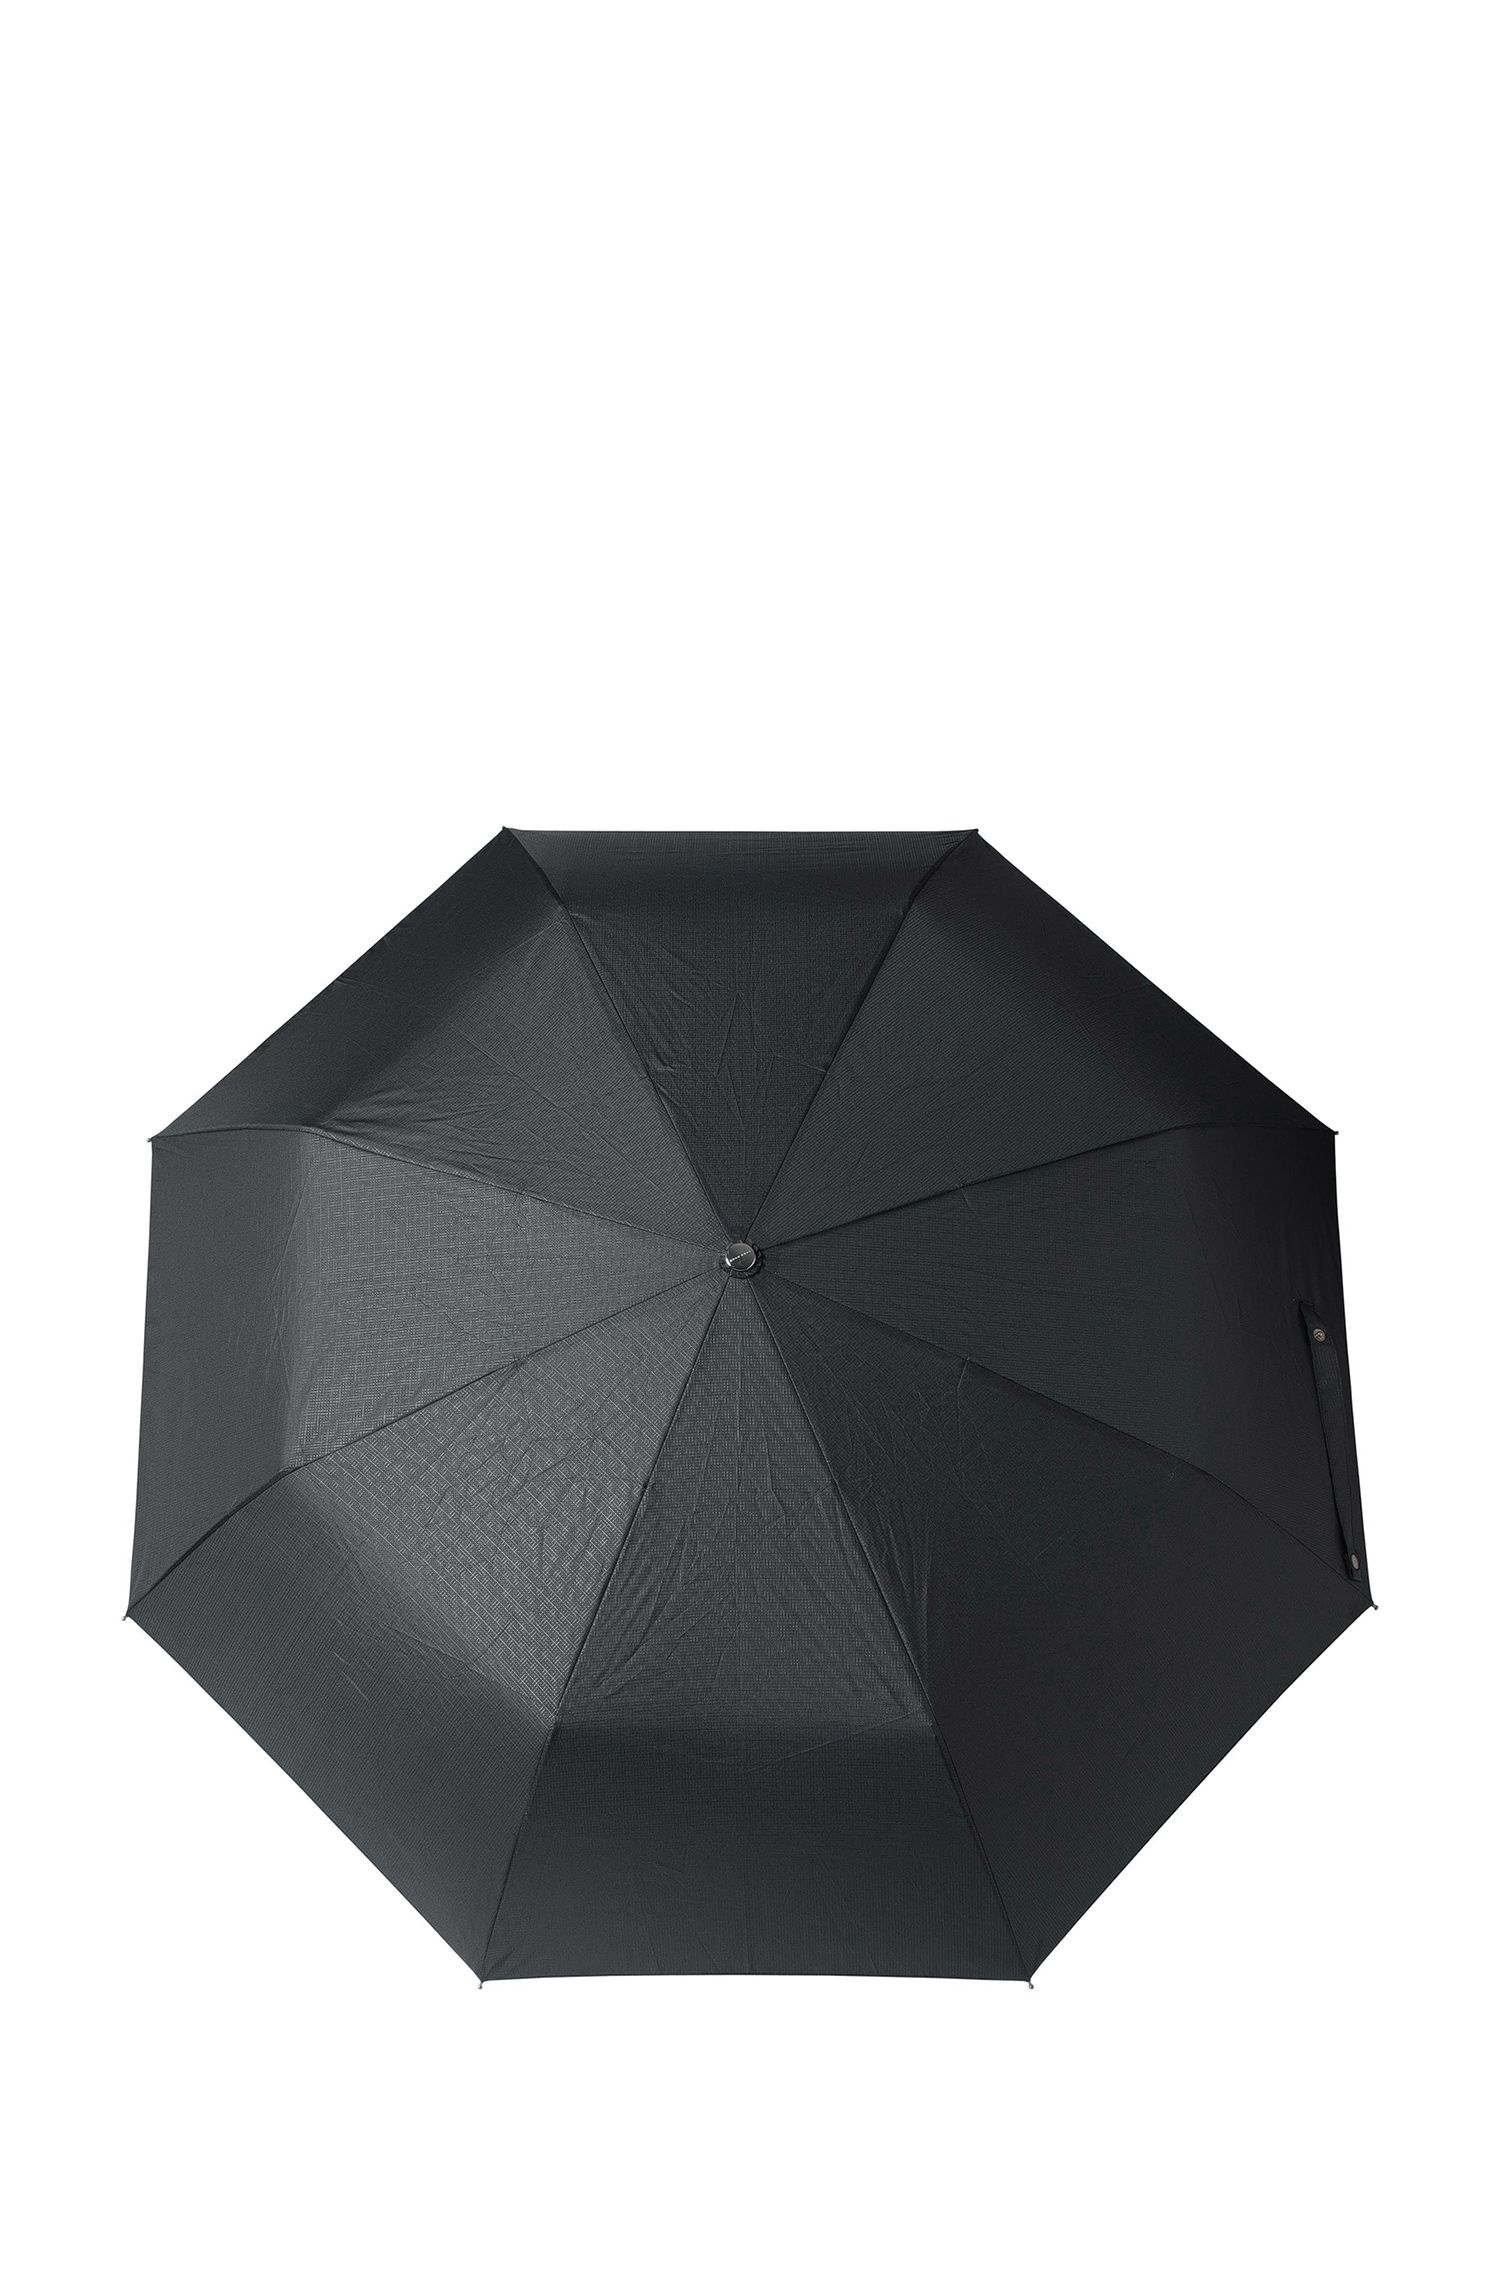 Nylon Printed Automatic Umbrella | Grid Pocket, Black